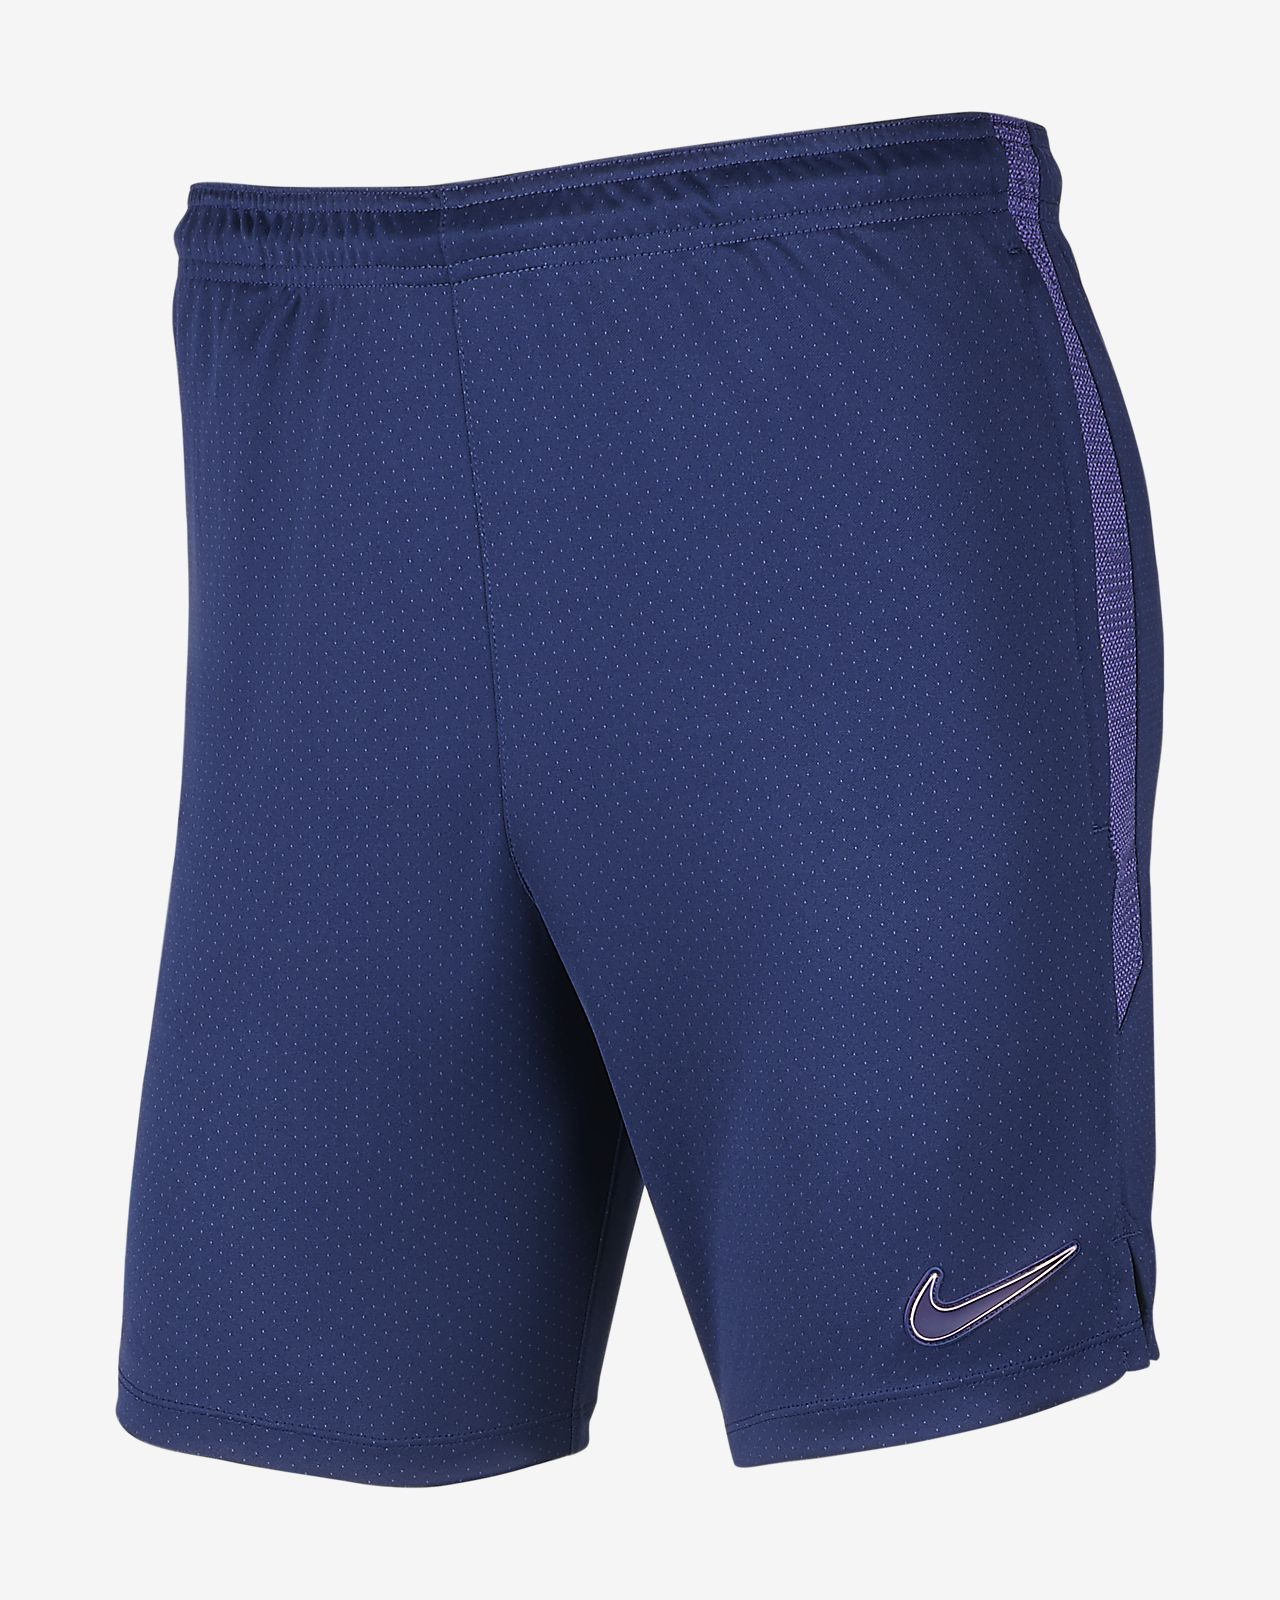 Nike Dri-FIT Tottenham Hotspur Men's Football Shorts